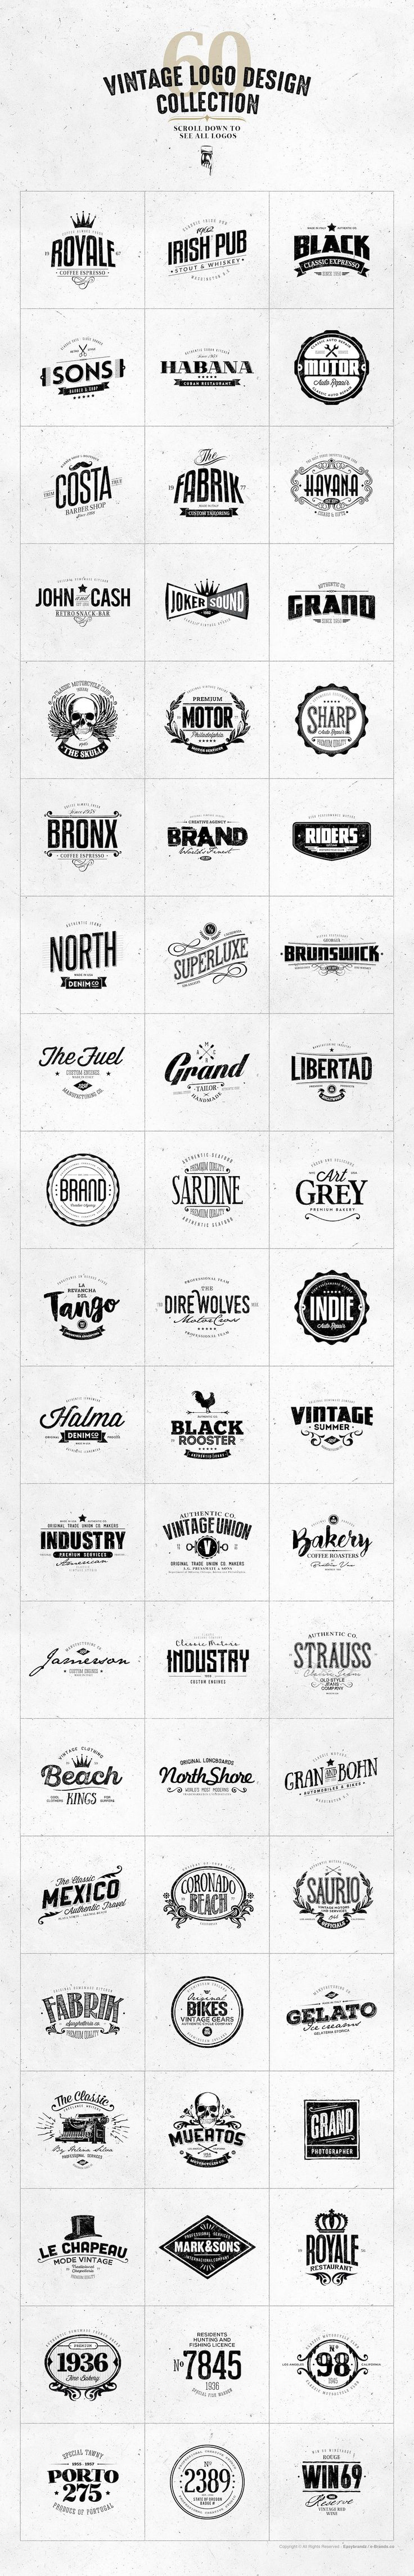 60 Vintage Logo Design Collection by Easybrandz on @creativemarket https://www.kznwedding.dj